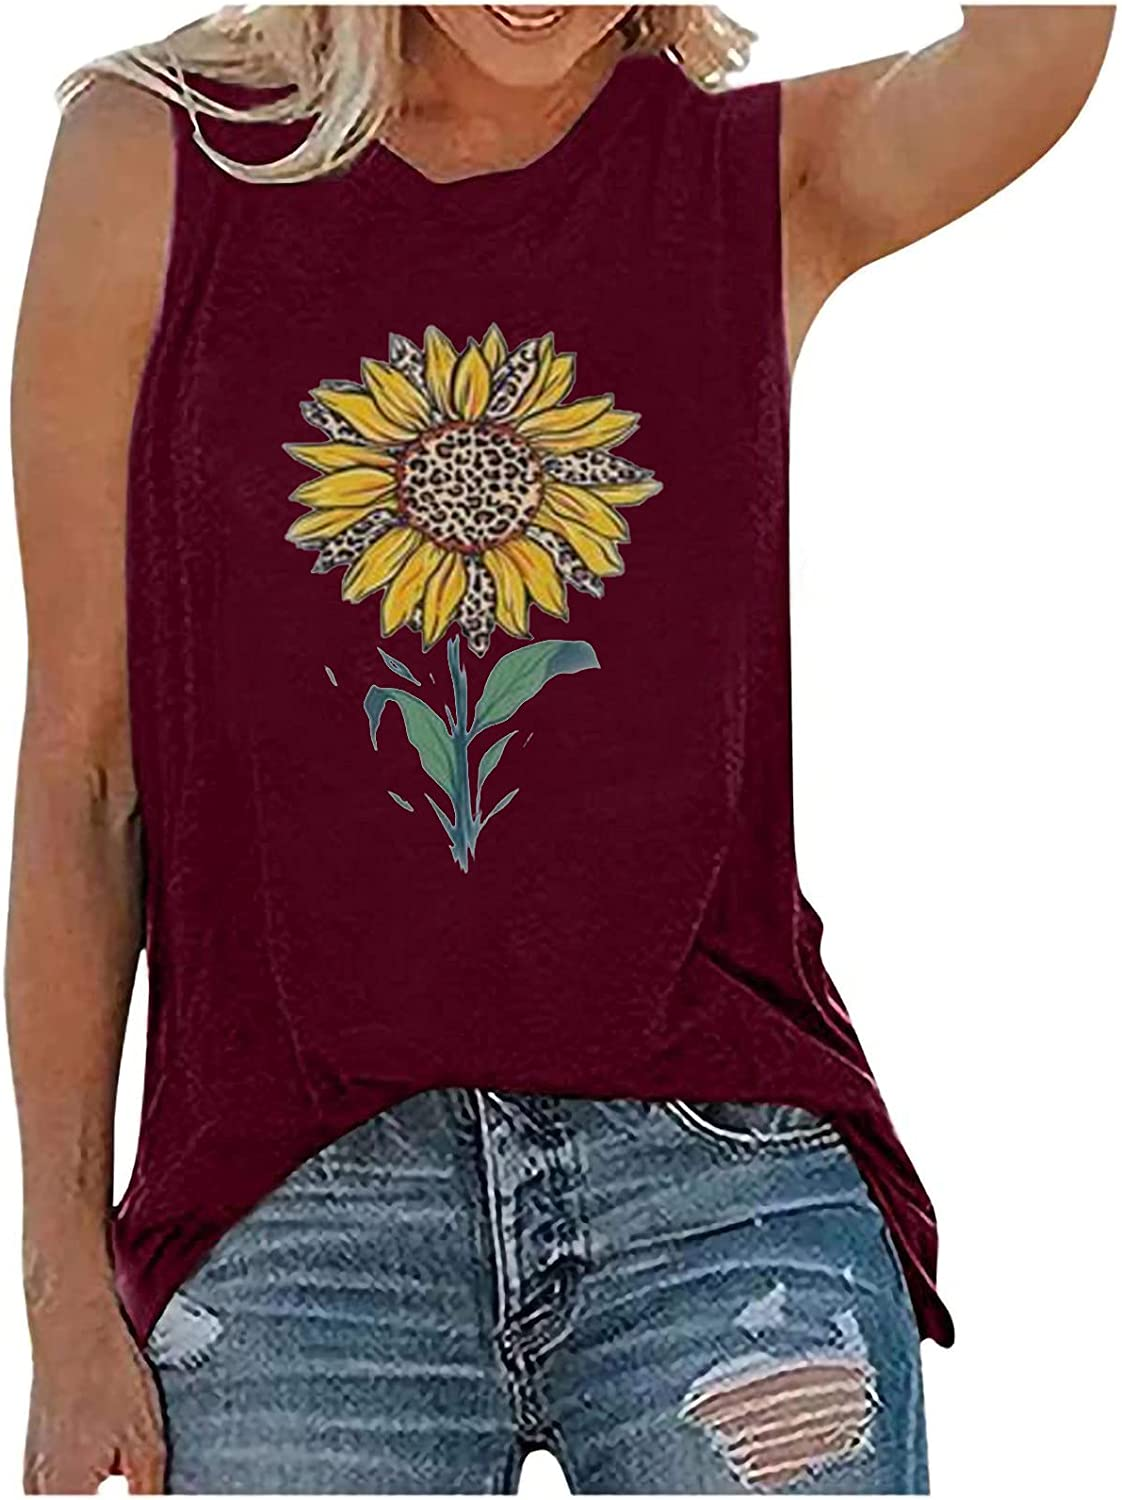 Womens Summer Sexy Workout Tank Tops Sleeveless Casual Loose Tunic Tees Plus Size Sunflower Print O-Neck Vest Tshirt